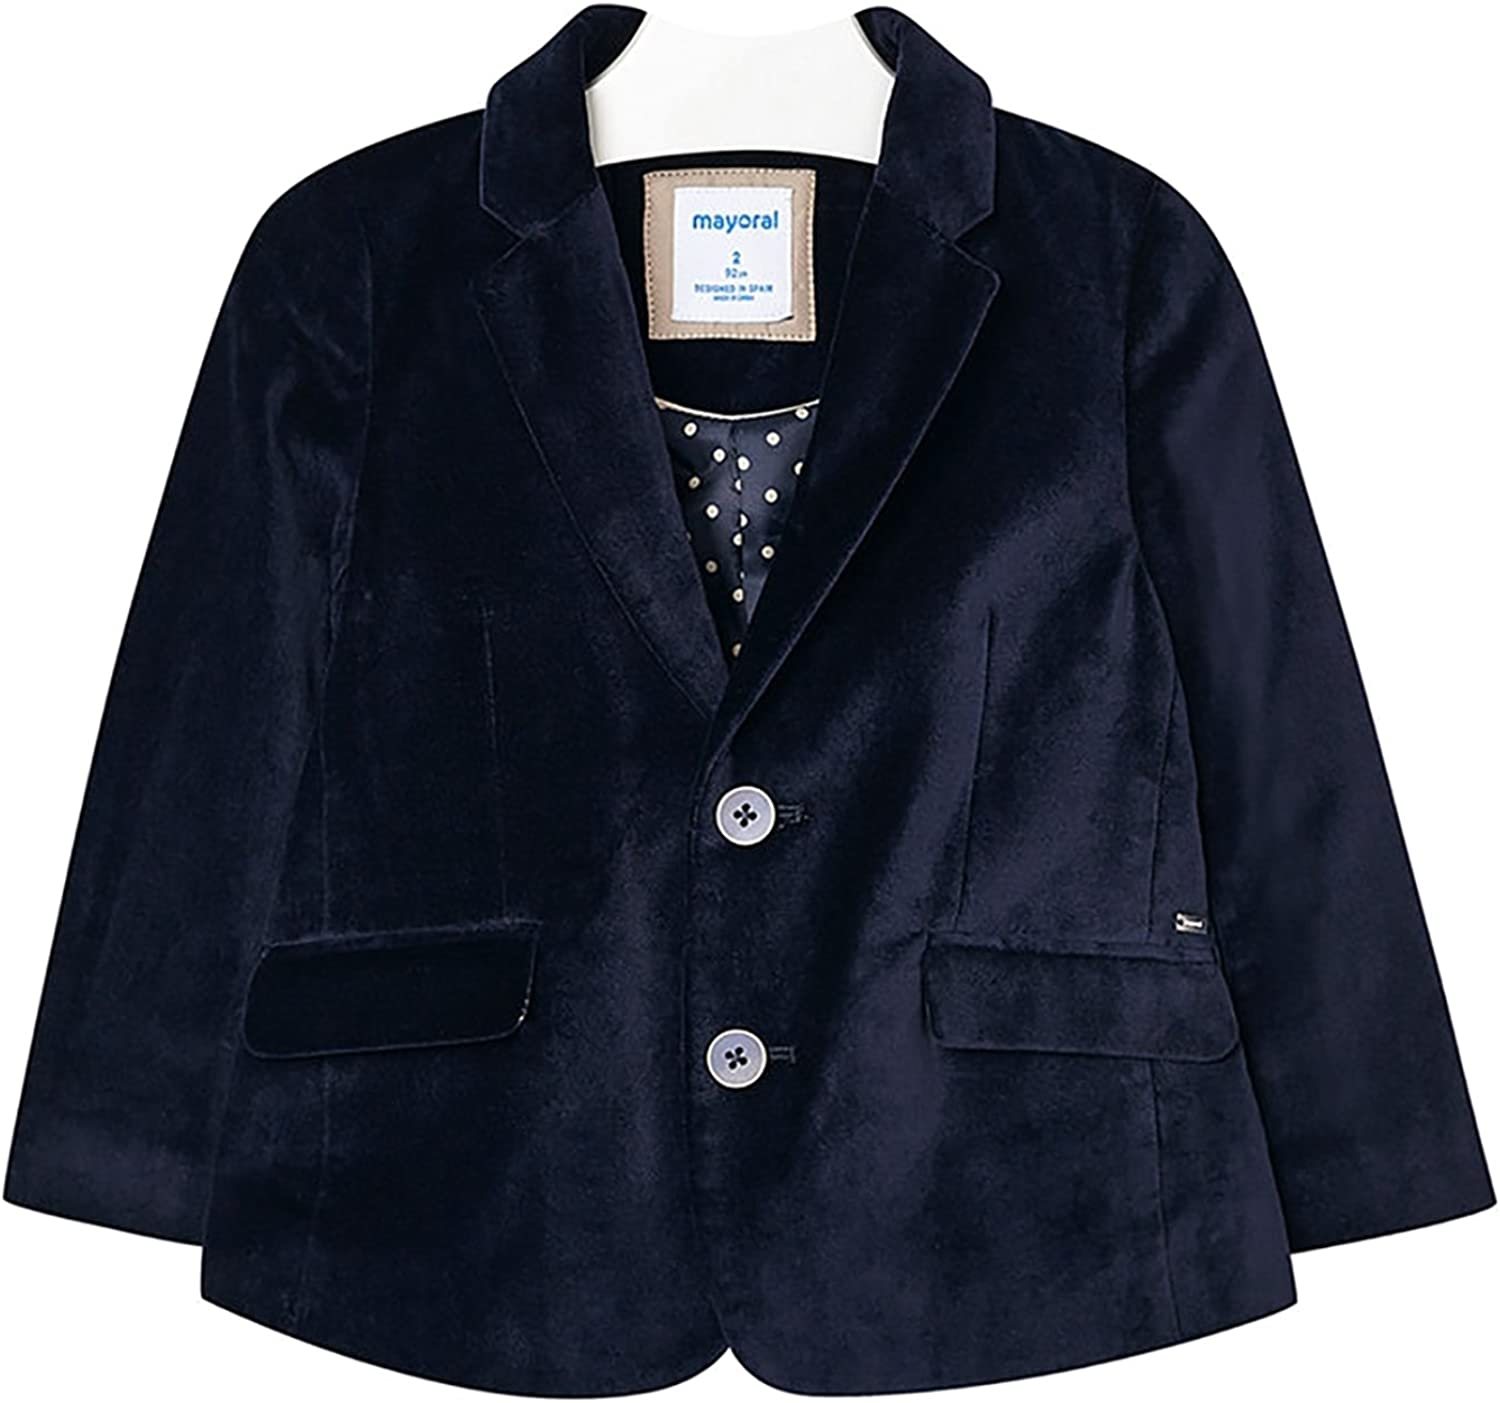 Mayoral - Jacket for Price reduction Girls 4478 All stores are sold Navy